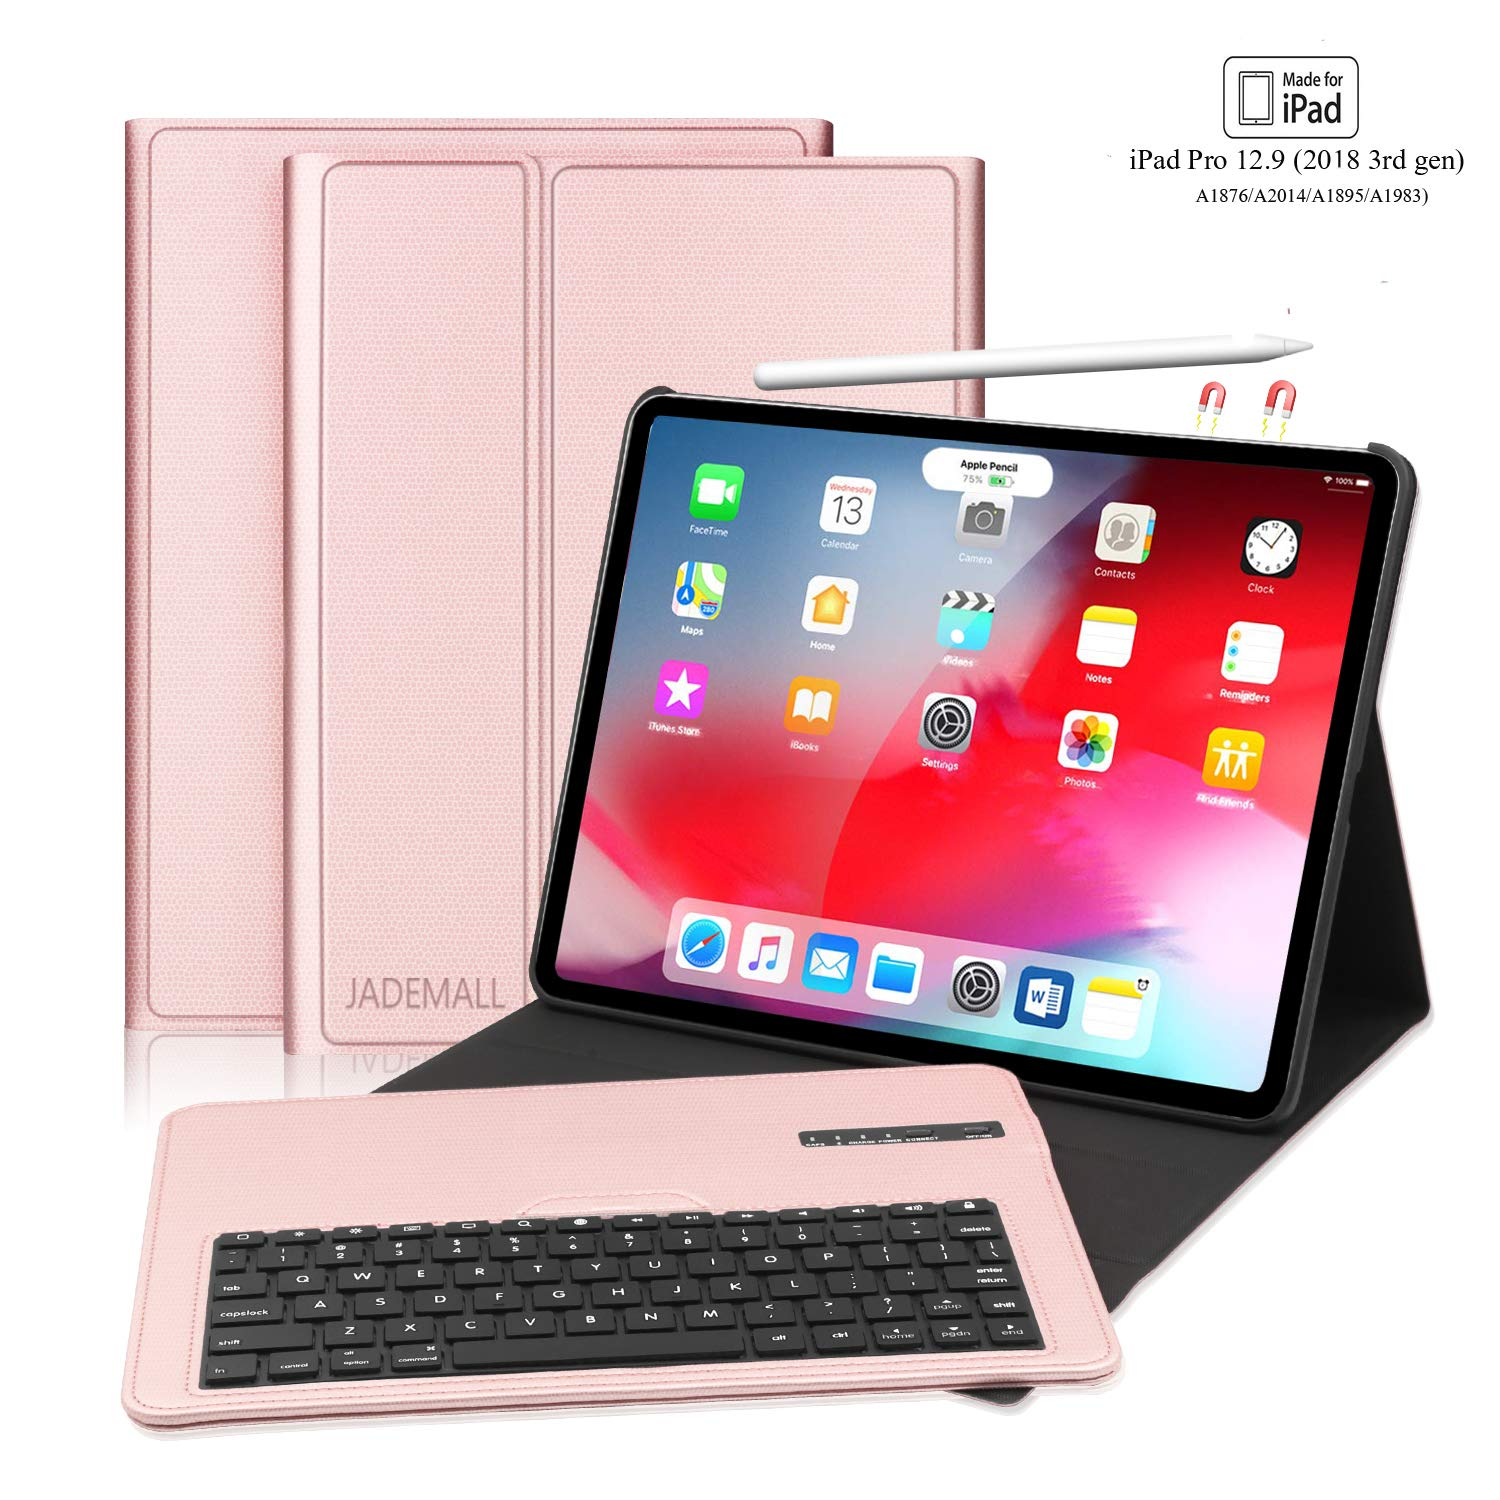 iPad Pro 12.9 Keyboard Case for Pro 12.9 Inch 2018(3rd Gen), Detachable Wireless Keyboard Stand Folio Cover, and Strong Magnetic Stand Folio Case, Support Pencil Charging, Auto Wake/Sleep, Rose Gold